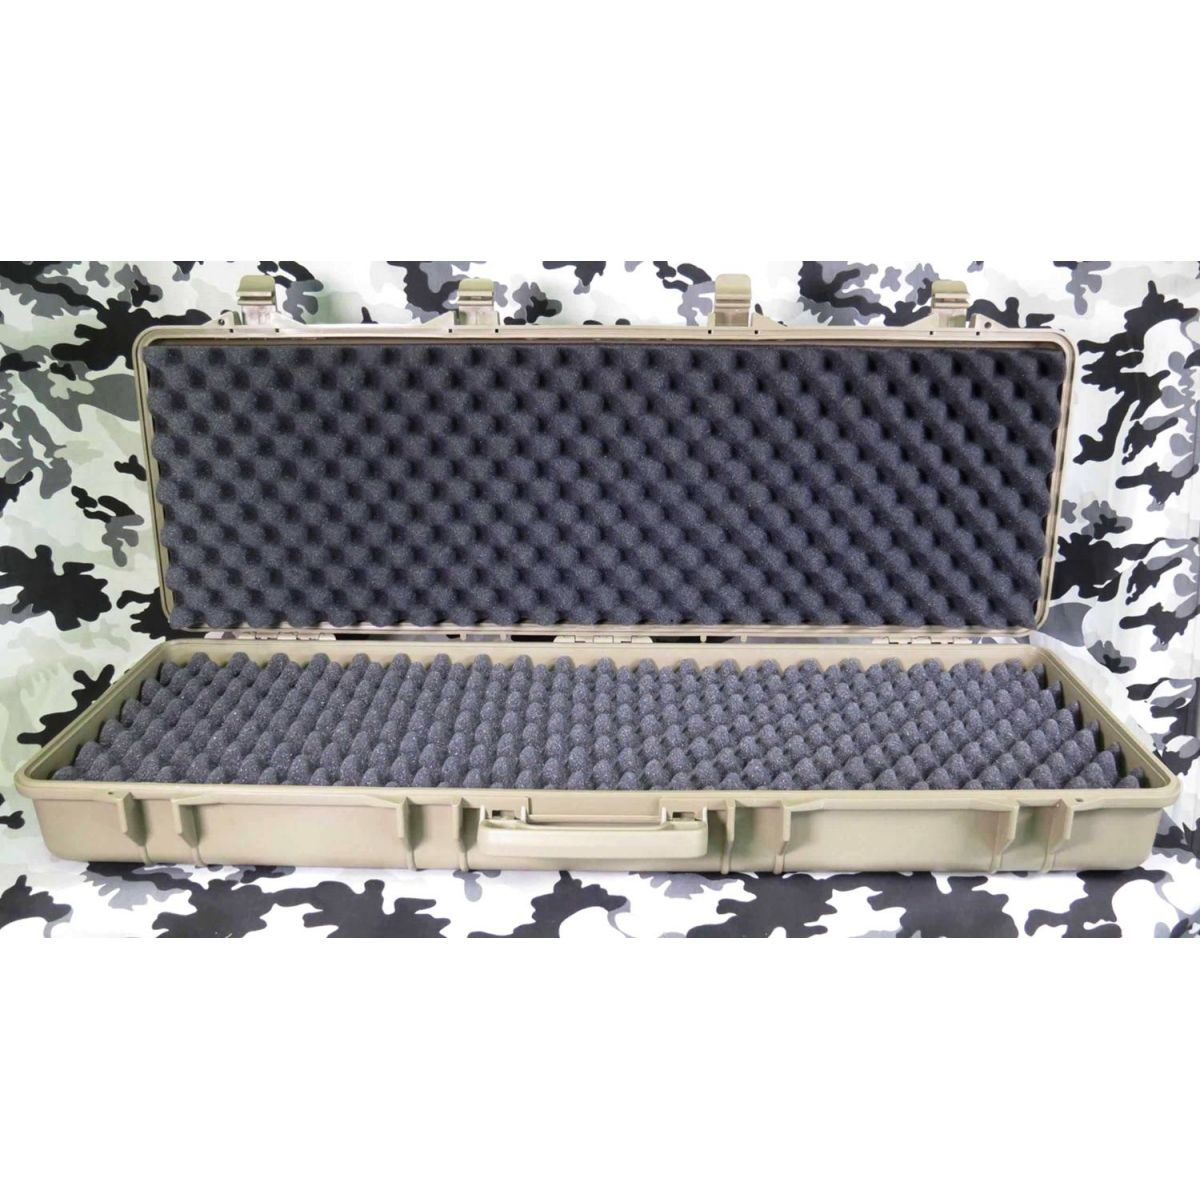 Case Plástico para Rifle - Cor: TAN  - MAB AIRSOFT